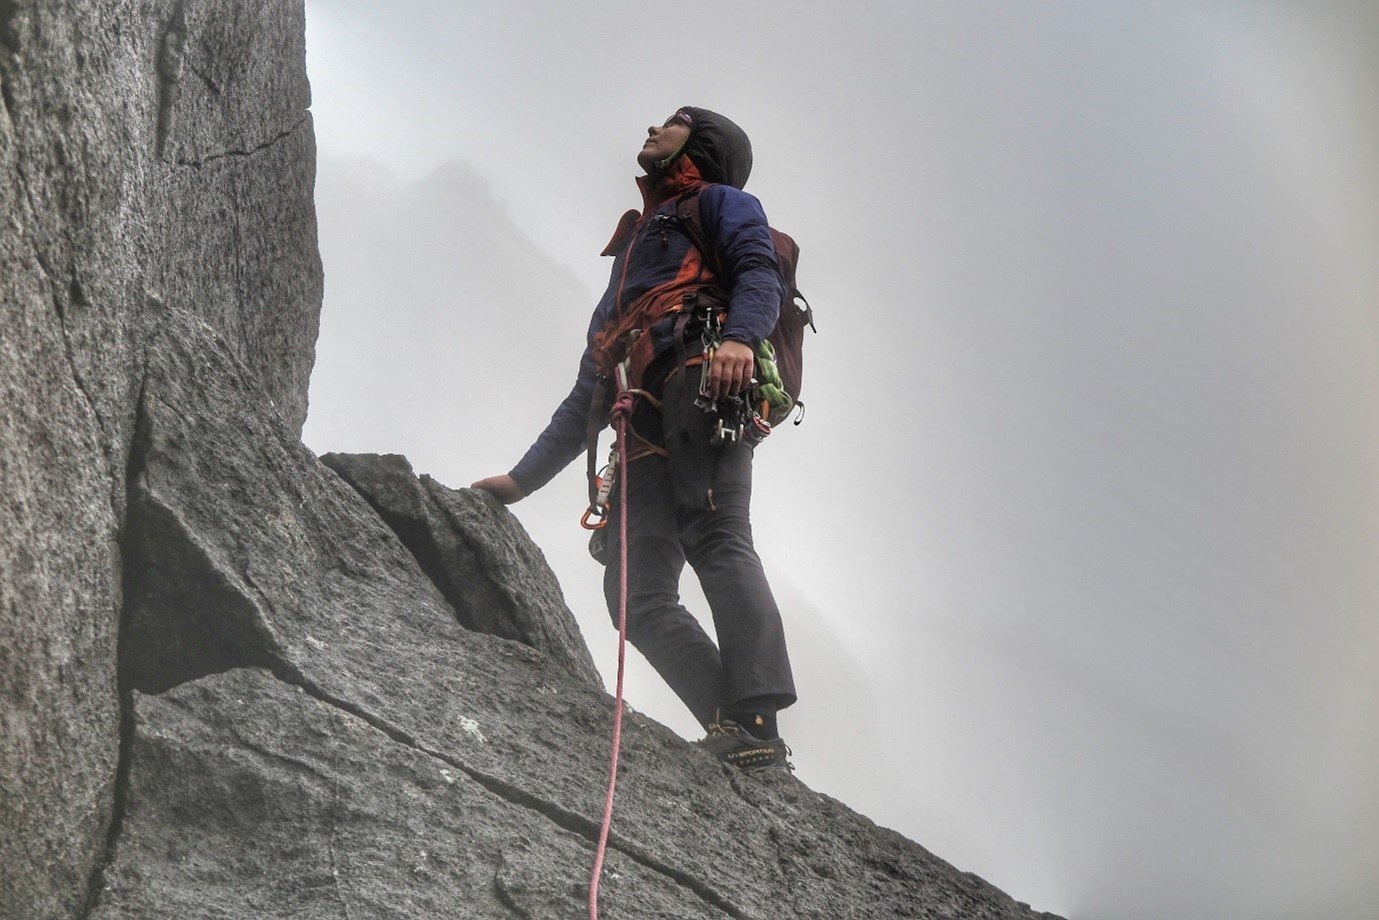 Anna stands atop cliff in Berghaus gear